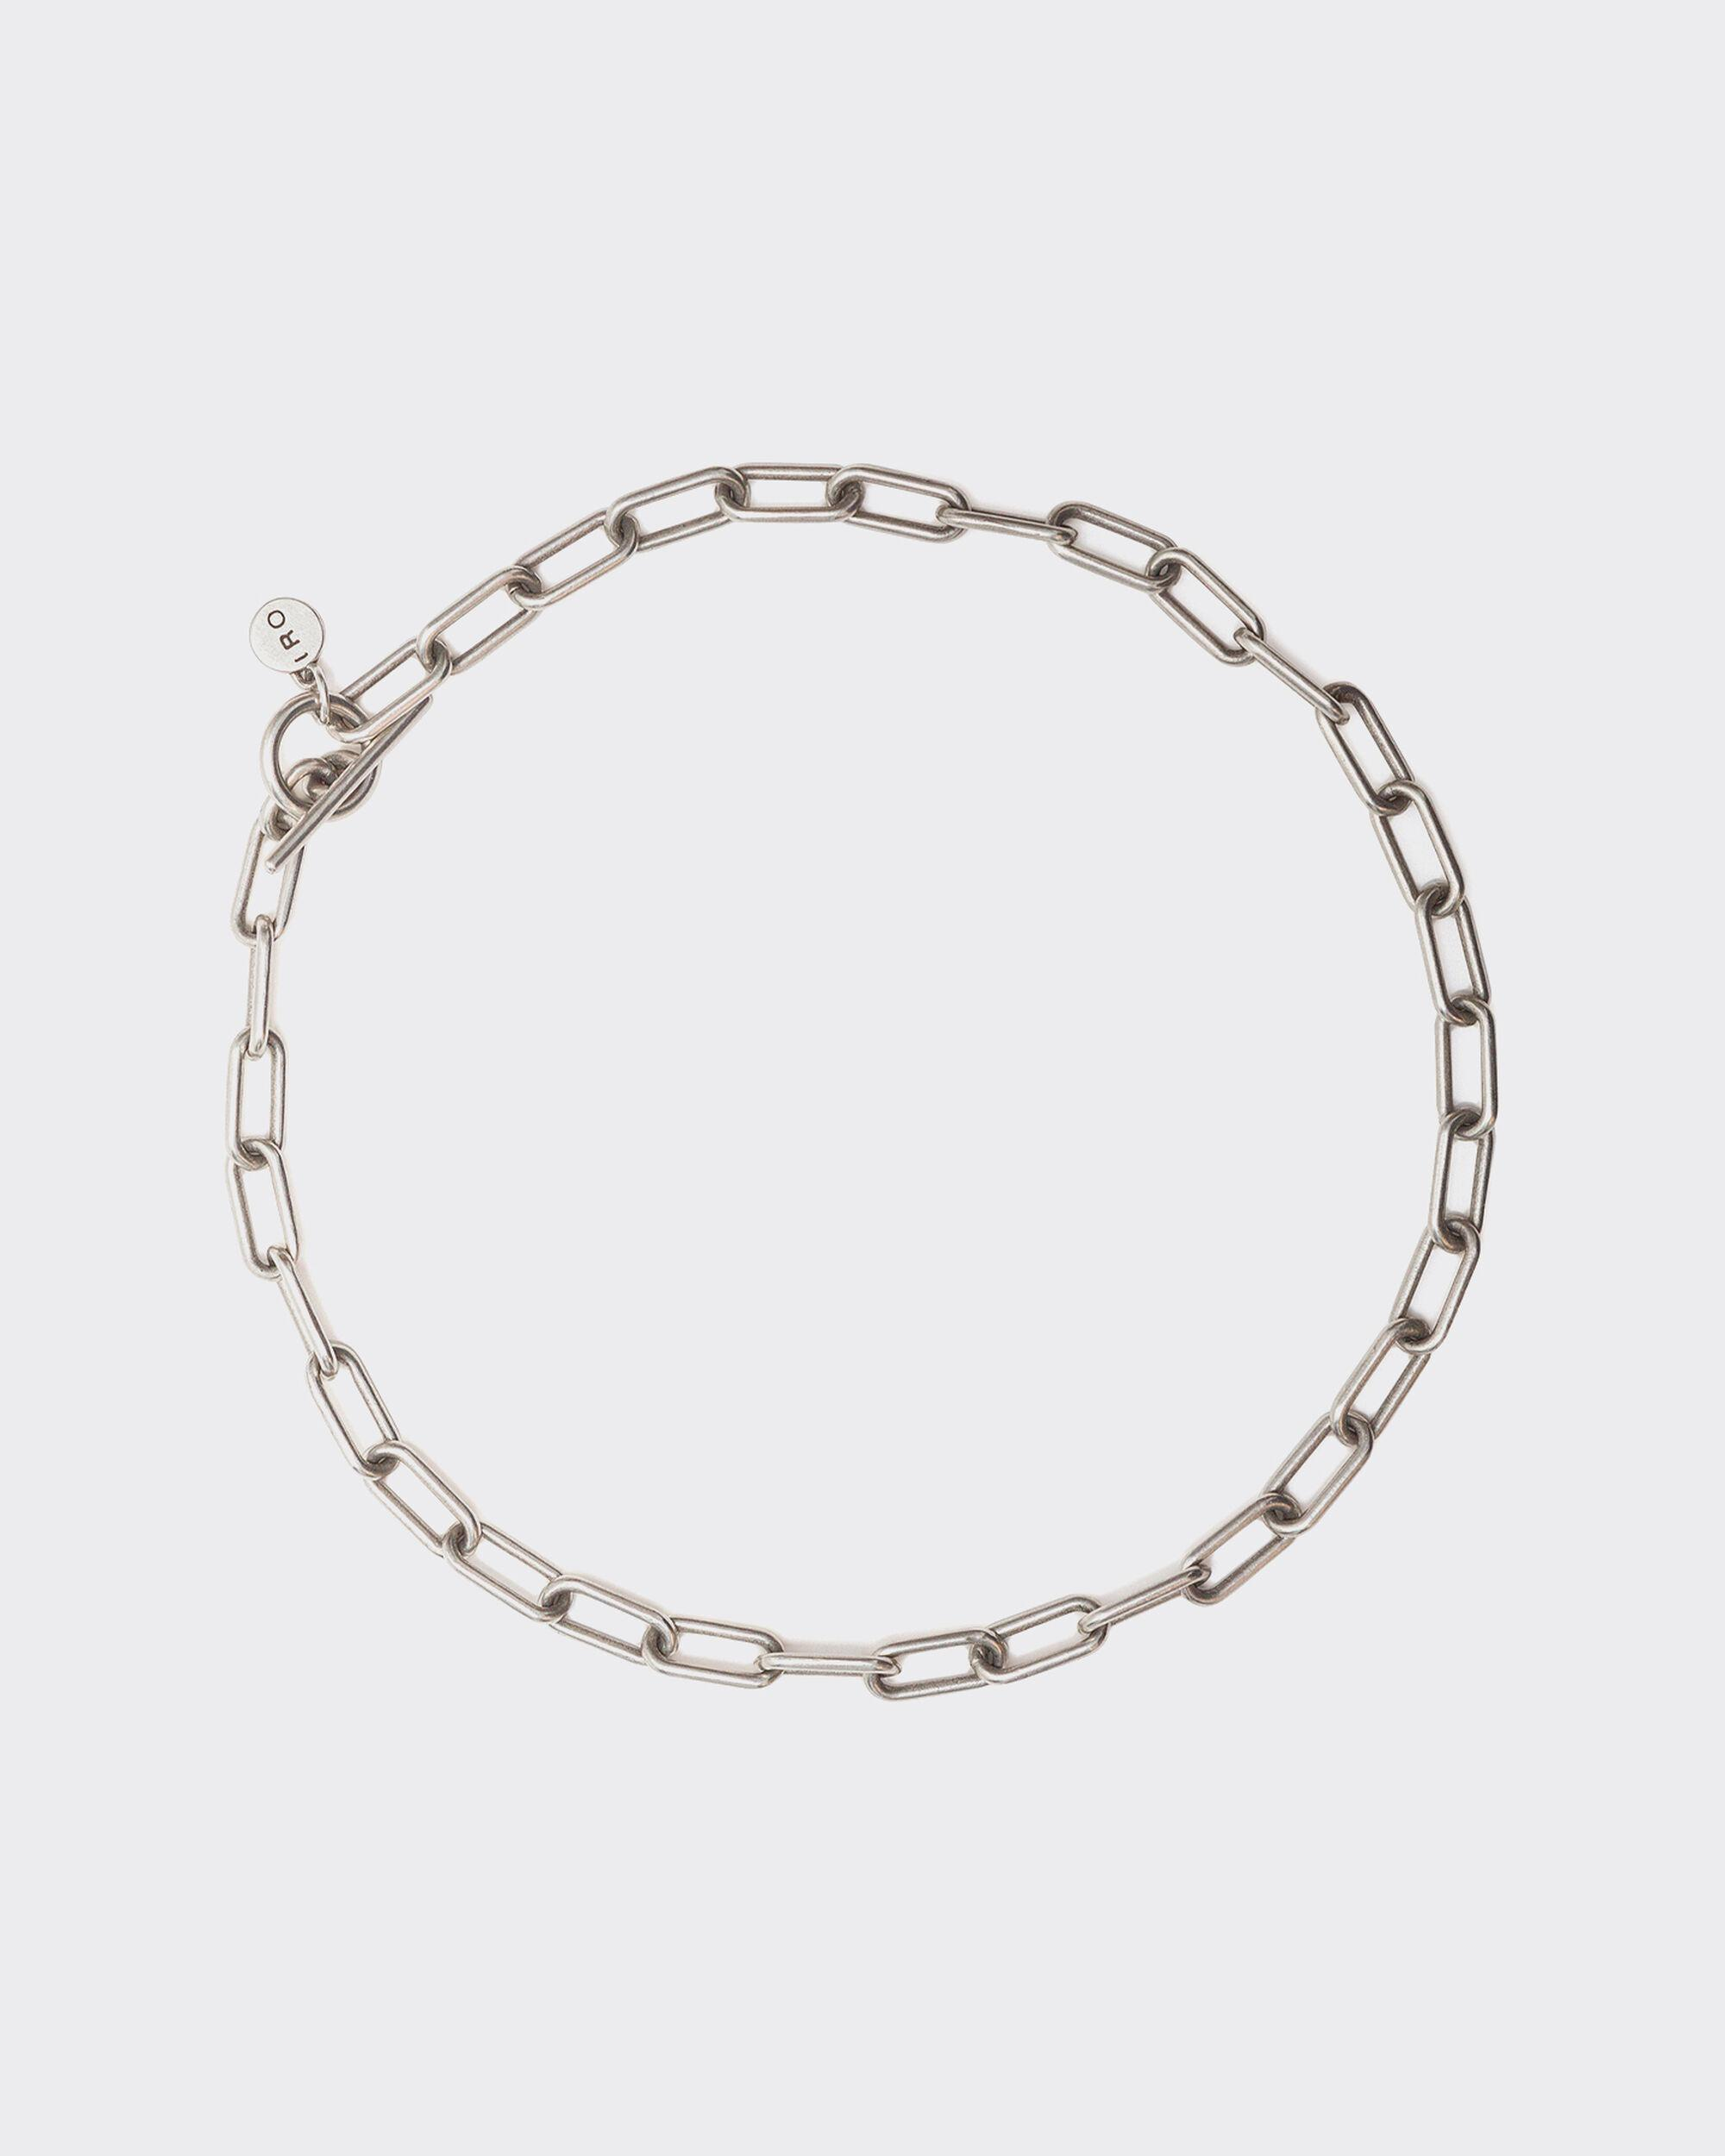 STRONTIO SILVER CHAIN NECKLACE